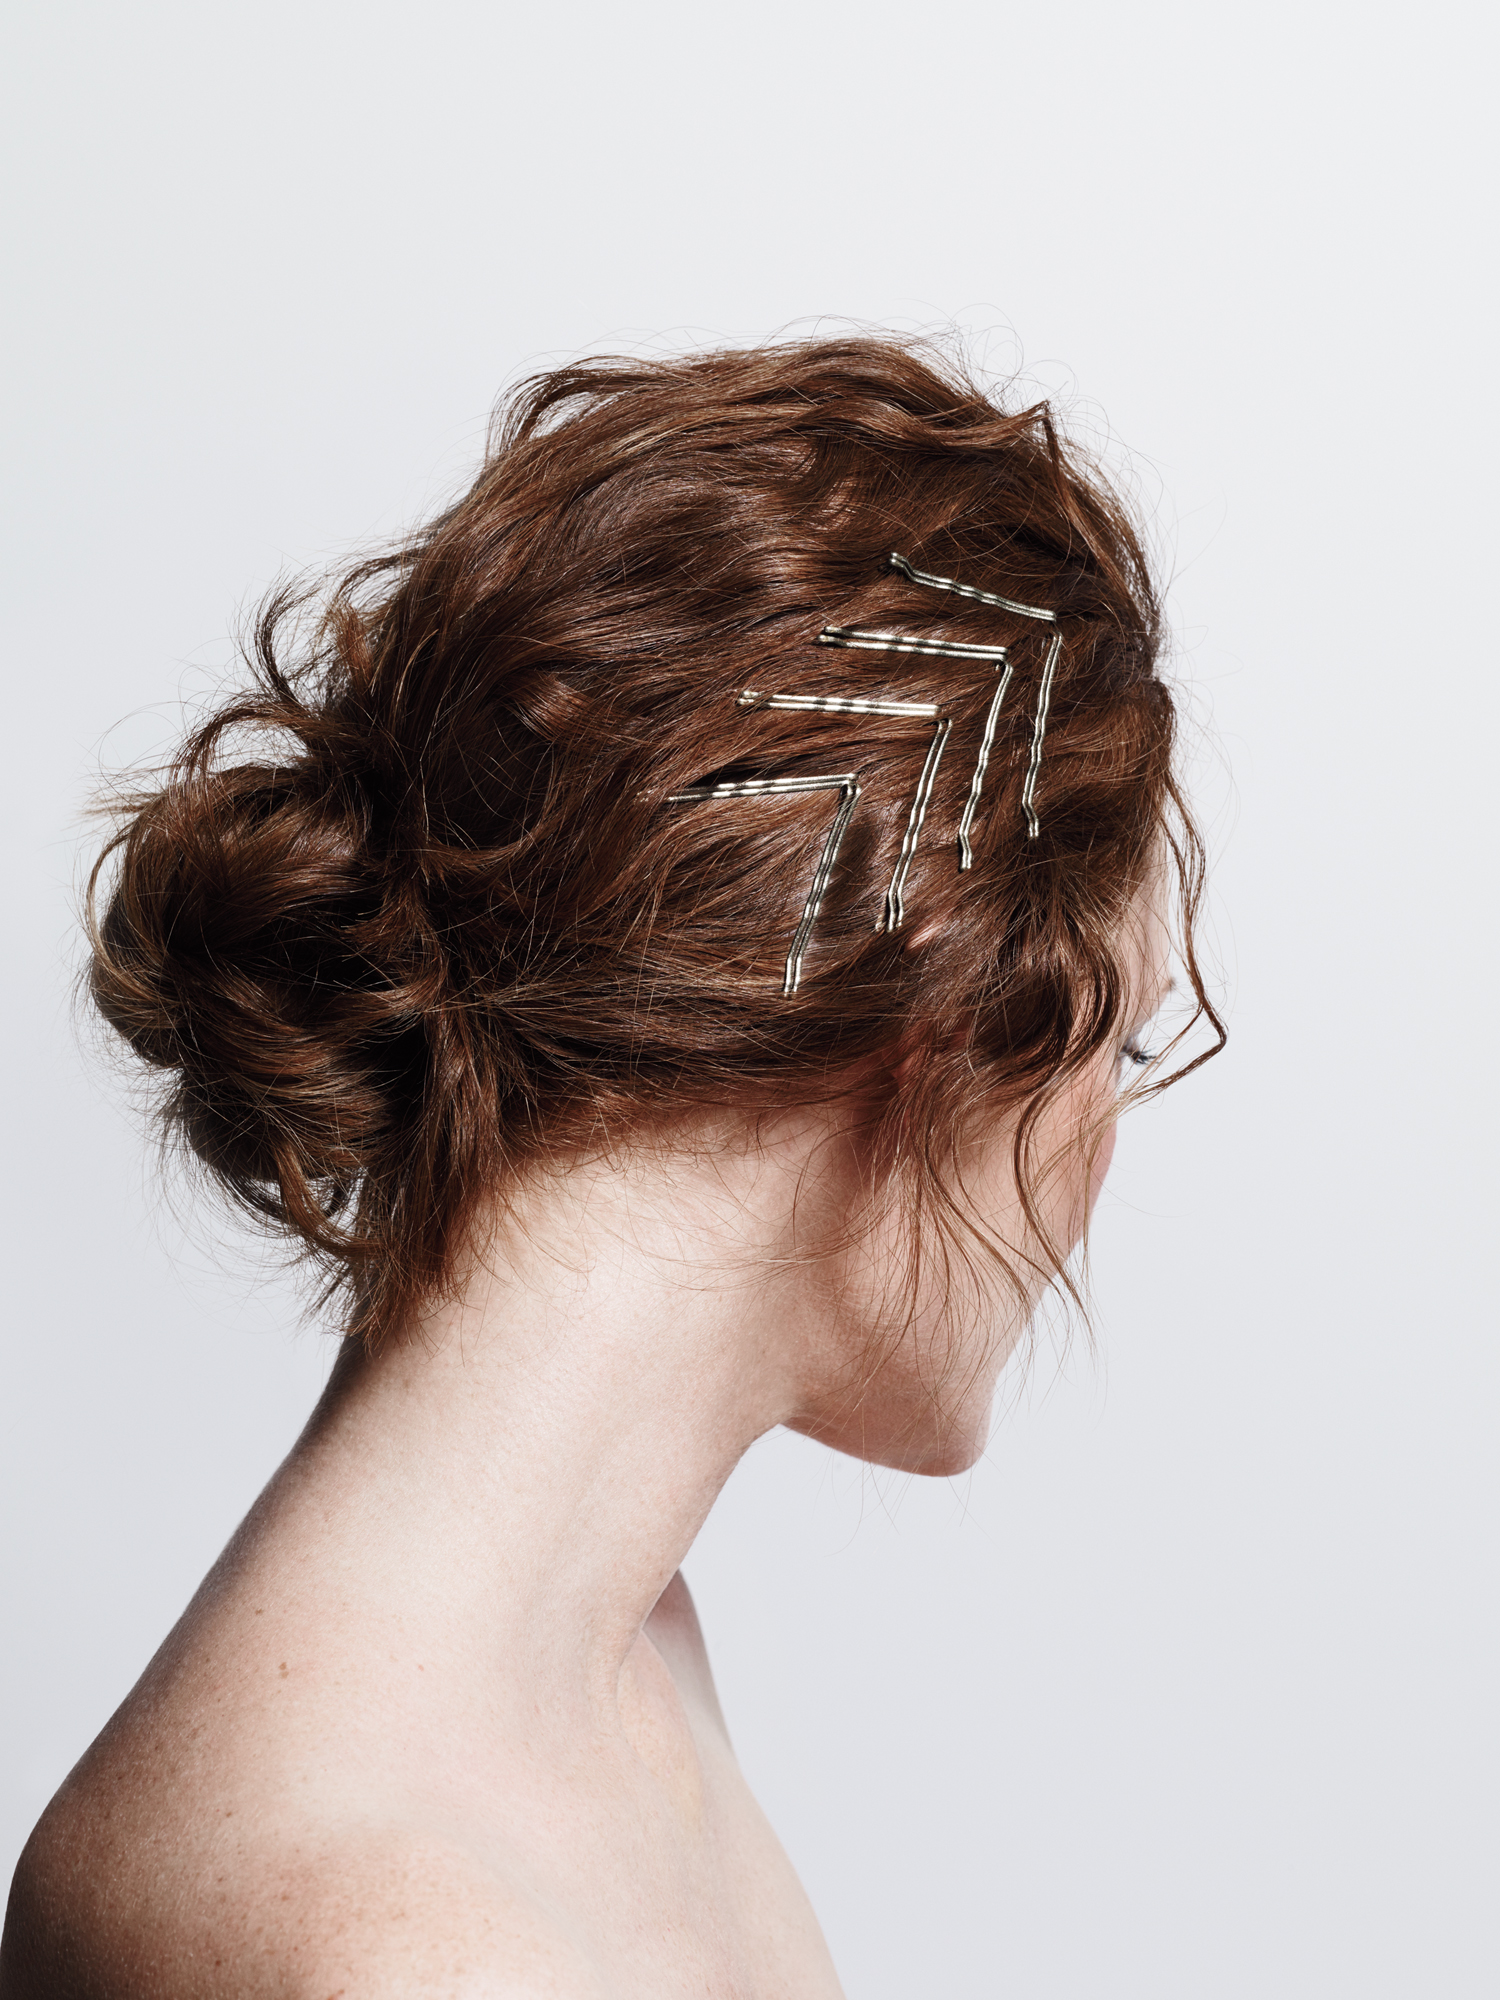 Model with bobby pins in V formation